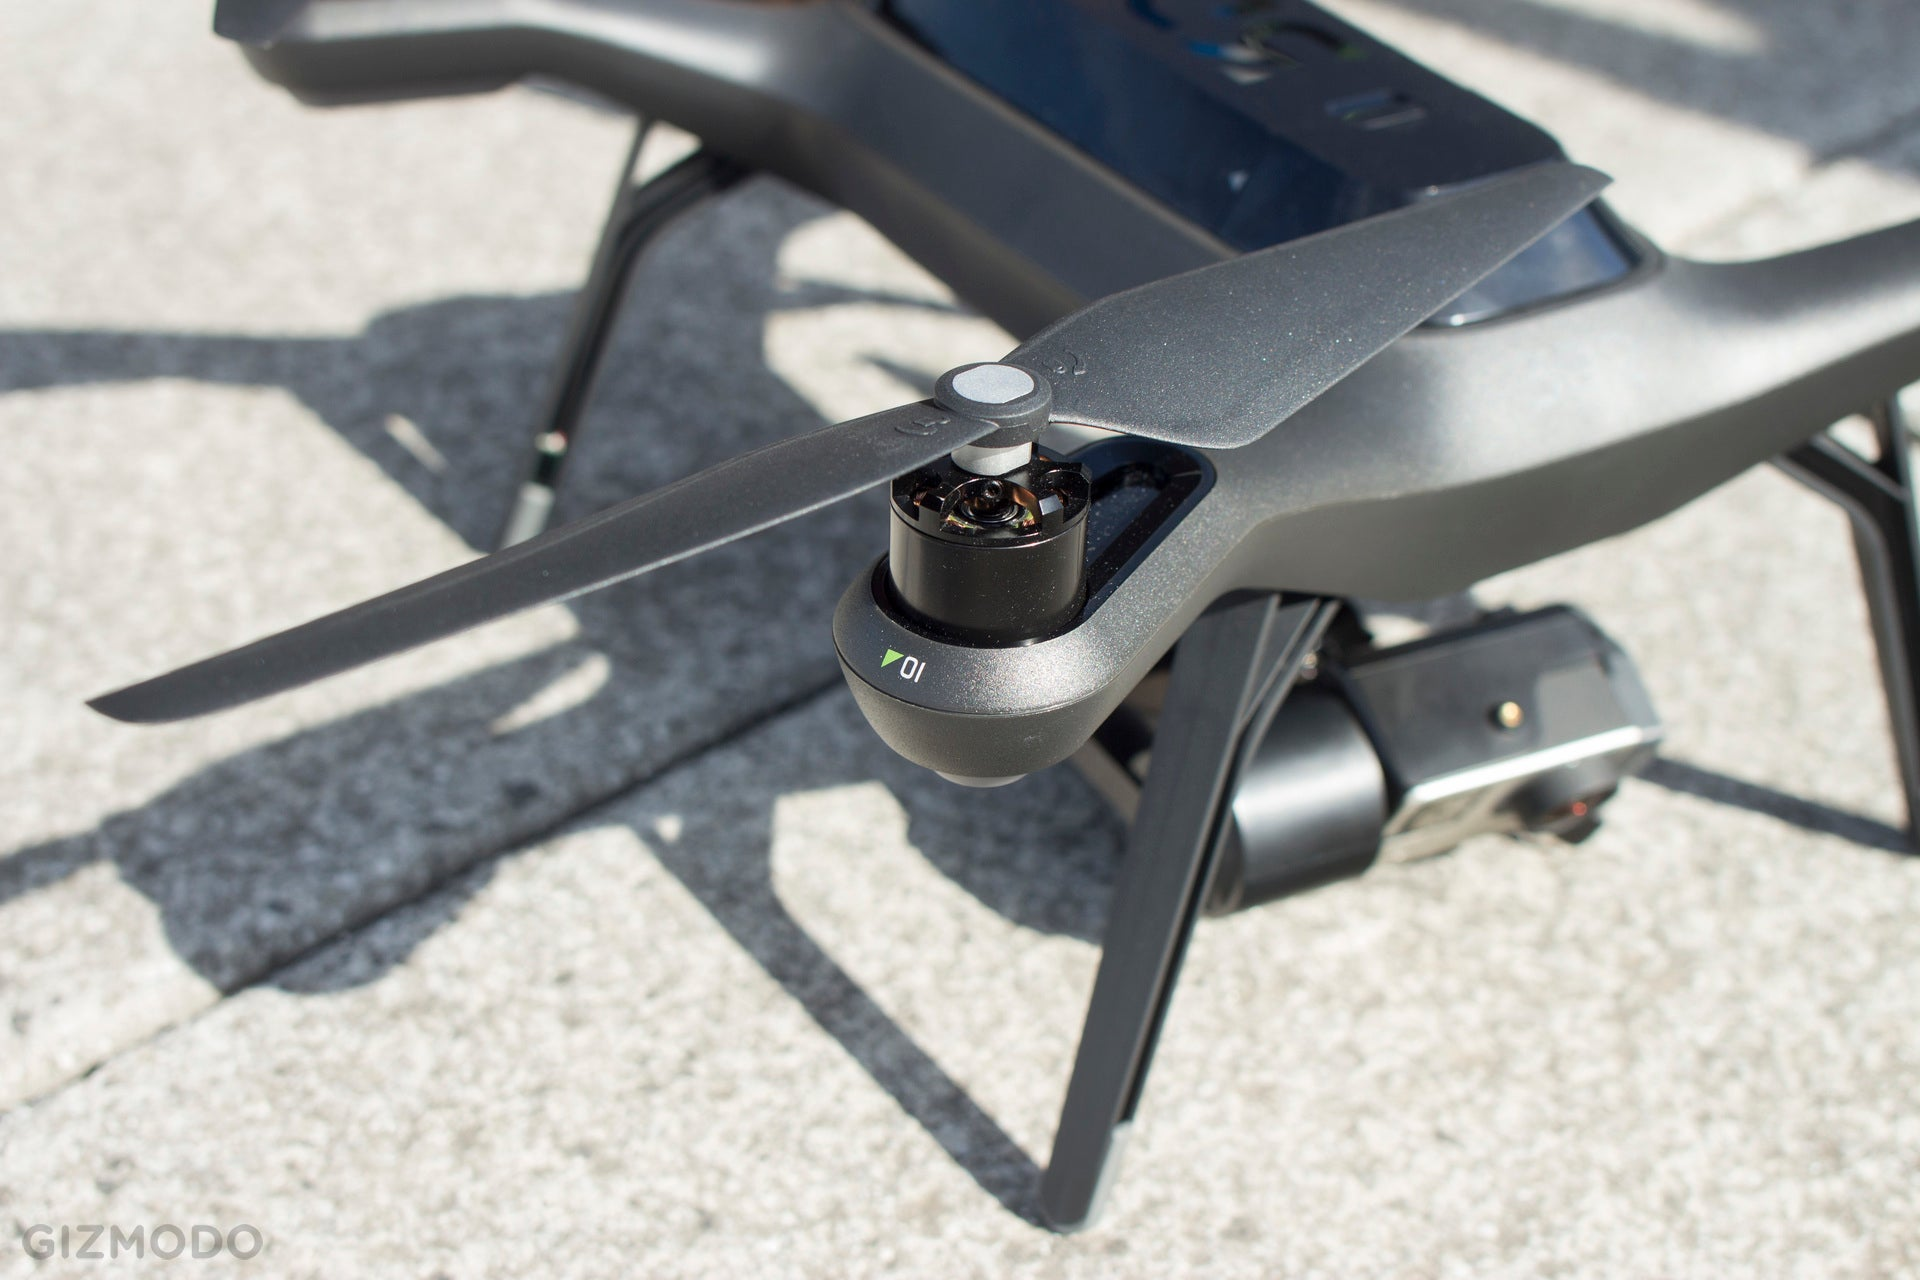 3DR's New Solo Drone Promises Airborne Footage Without a Learning Curve